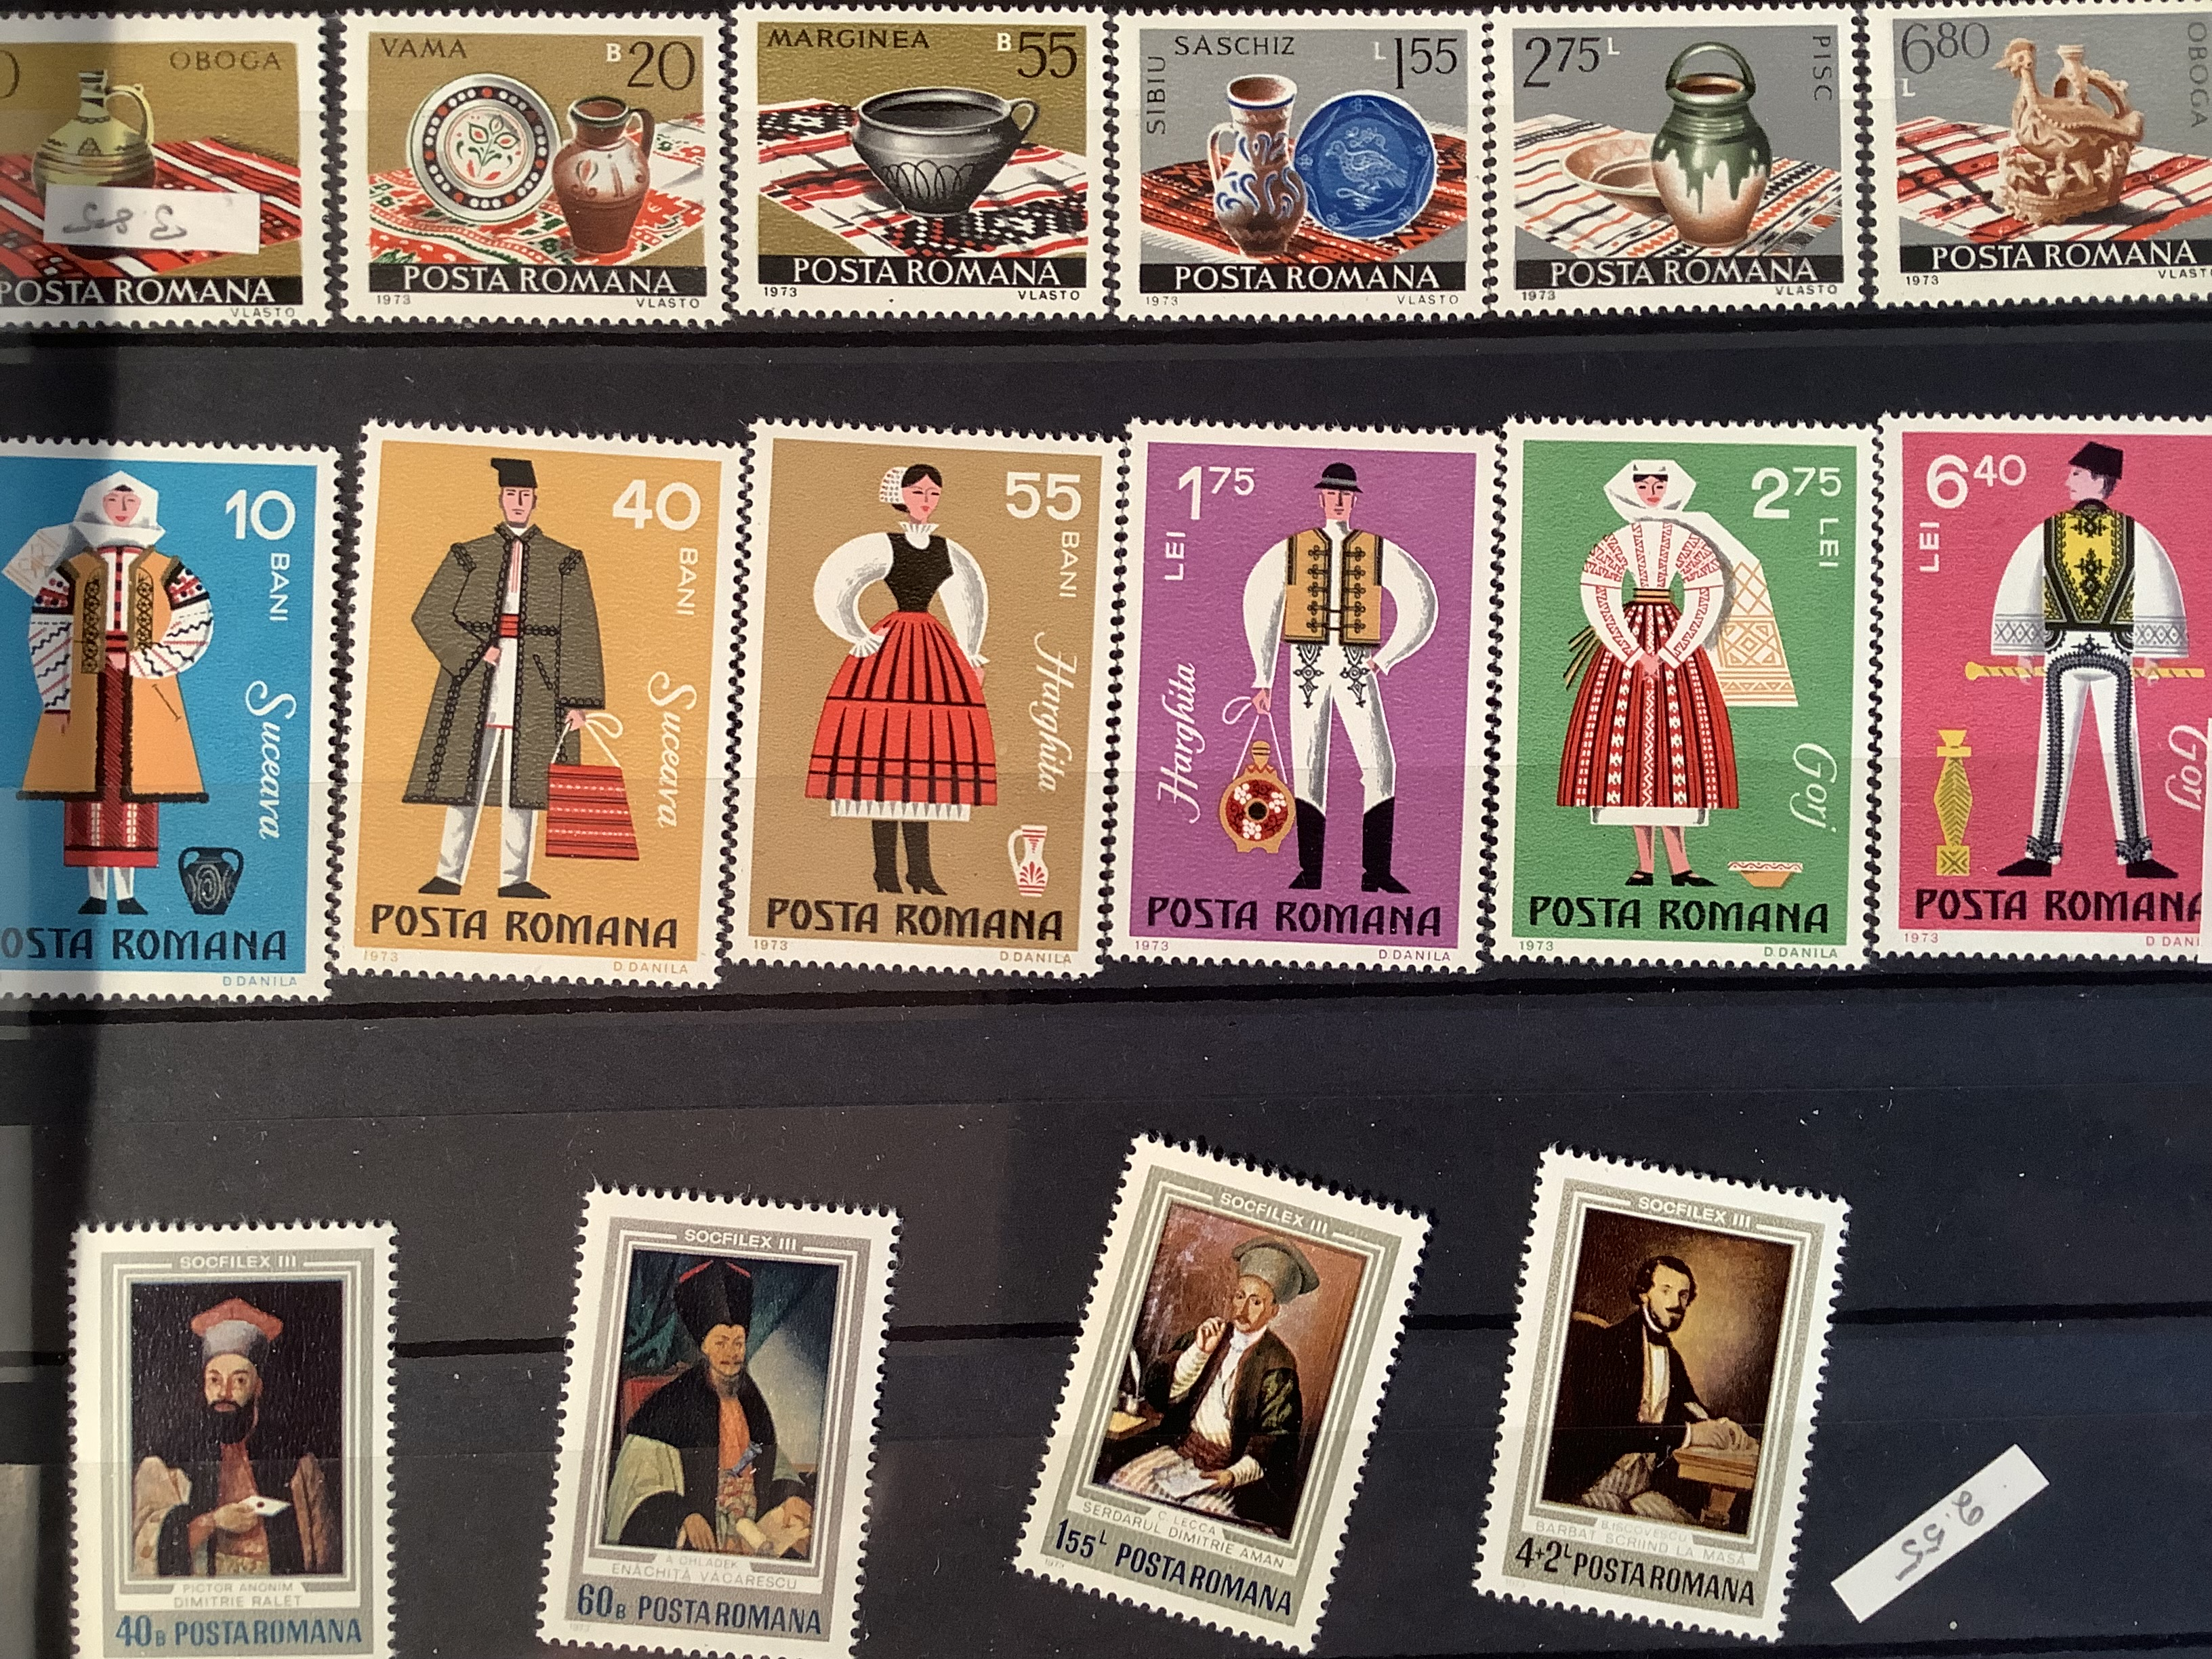 Three Stock Books with a large collection of Romanian postage stamps dating from 1925 to 1990s, a - Image 2 of 7